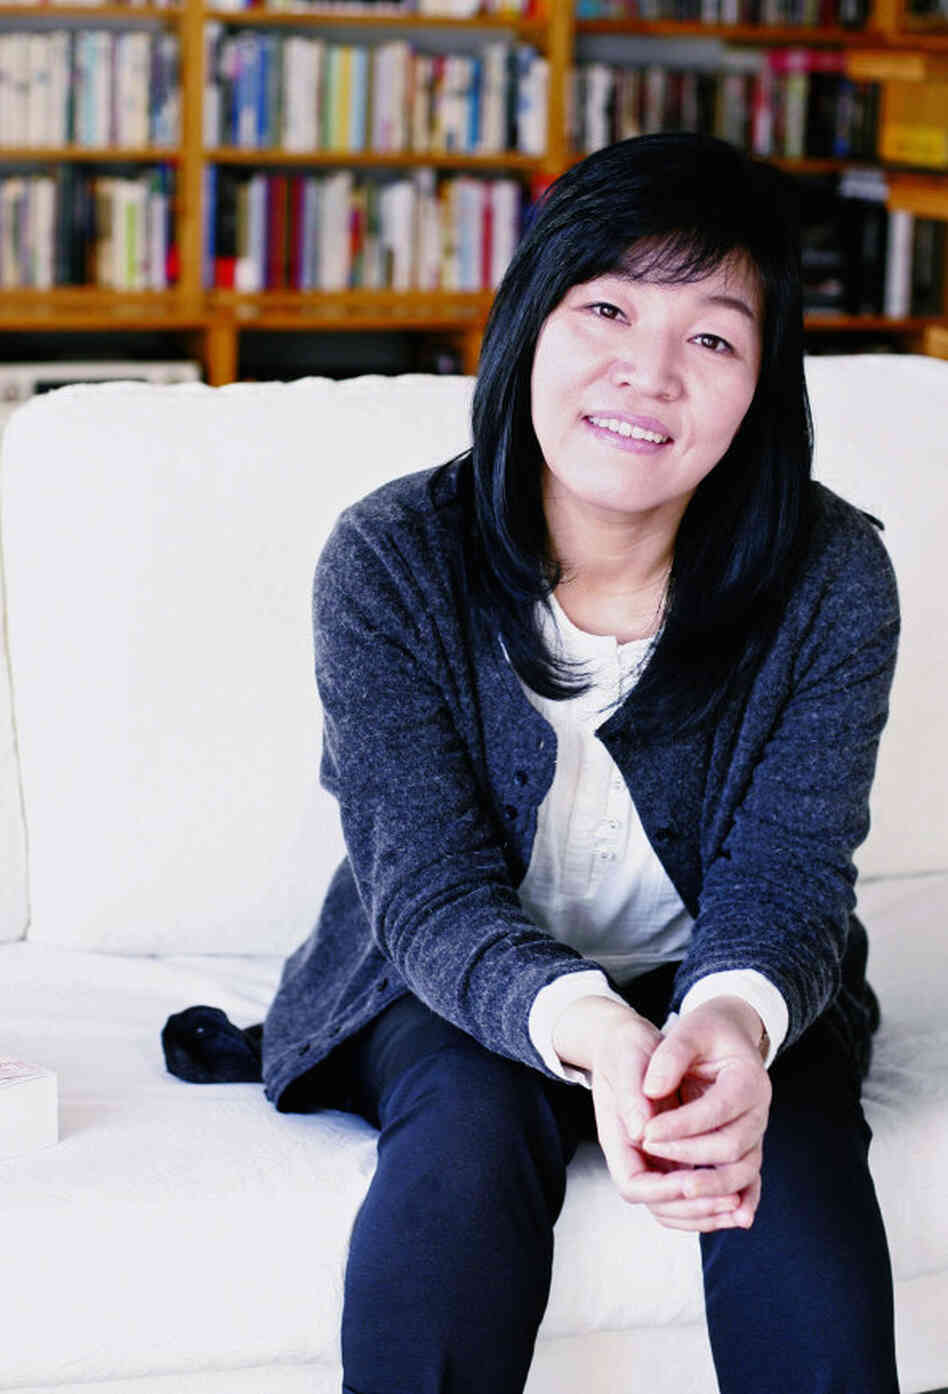 Kyung-Sook Shin grew up in rural South Korea, until she moved to Seoul at 16 to work in an electronics plant and attend night school. Please Look After Mom was first published in South Korea, where it sold more than a million copies.